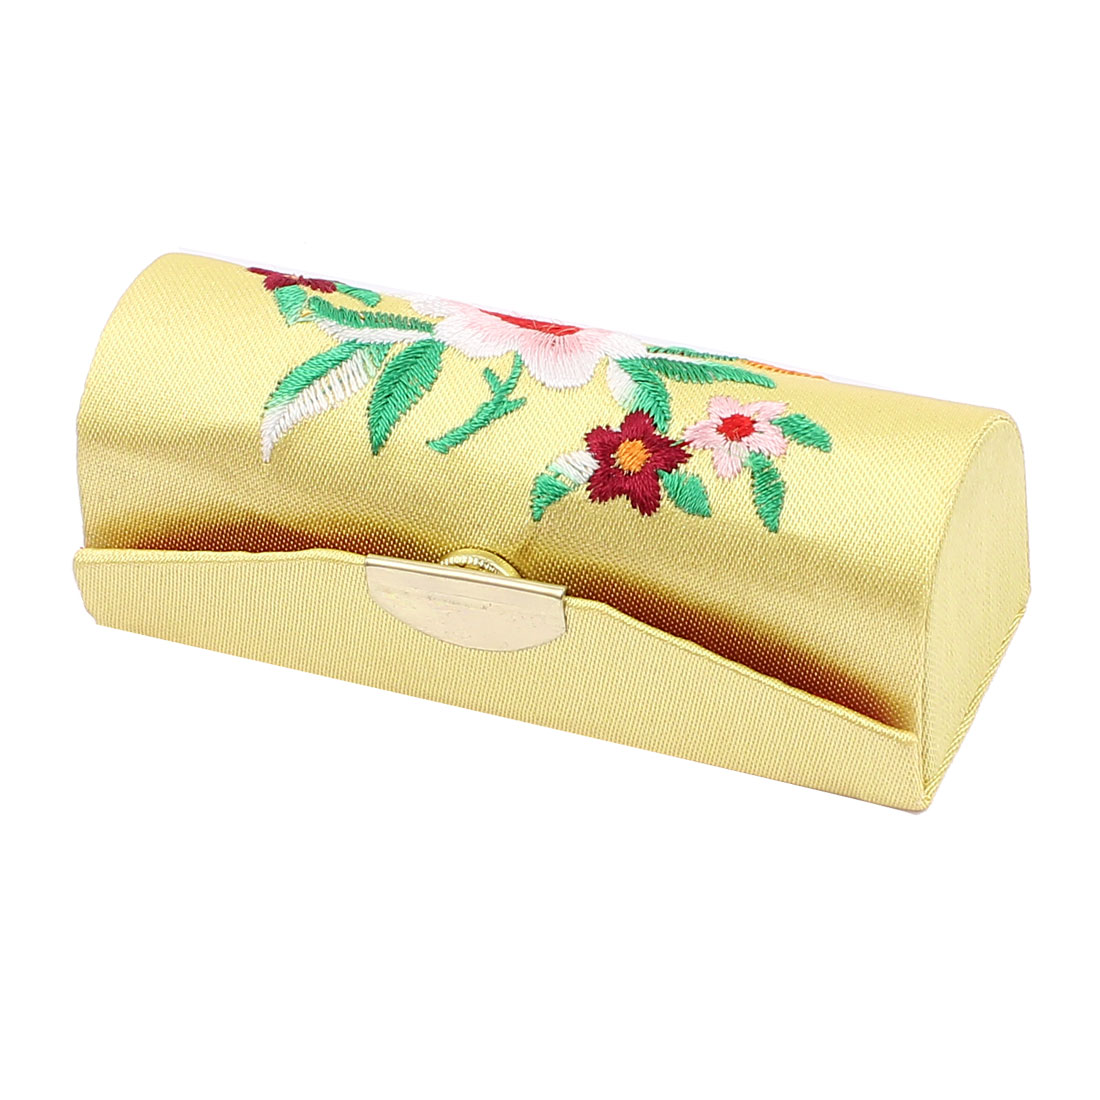 Chinese Style Floral Embroidered Lipstick Lip Chap Stick Case Holder Box Yellow